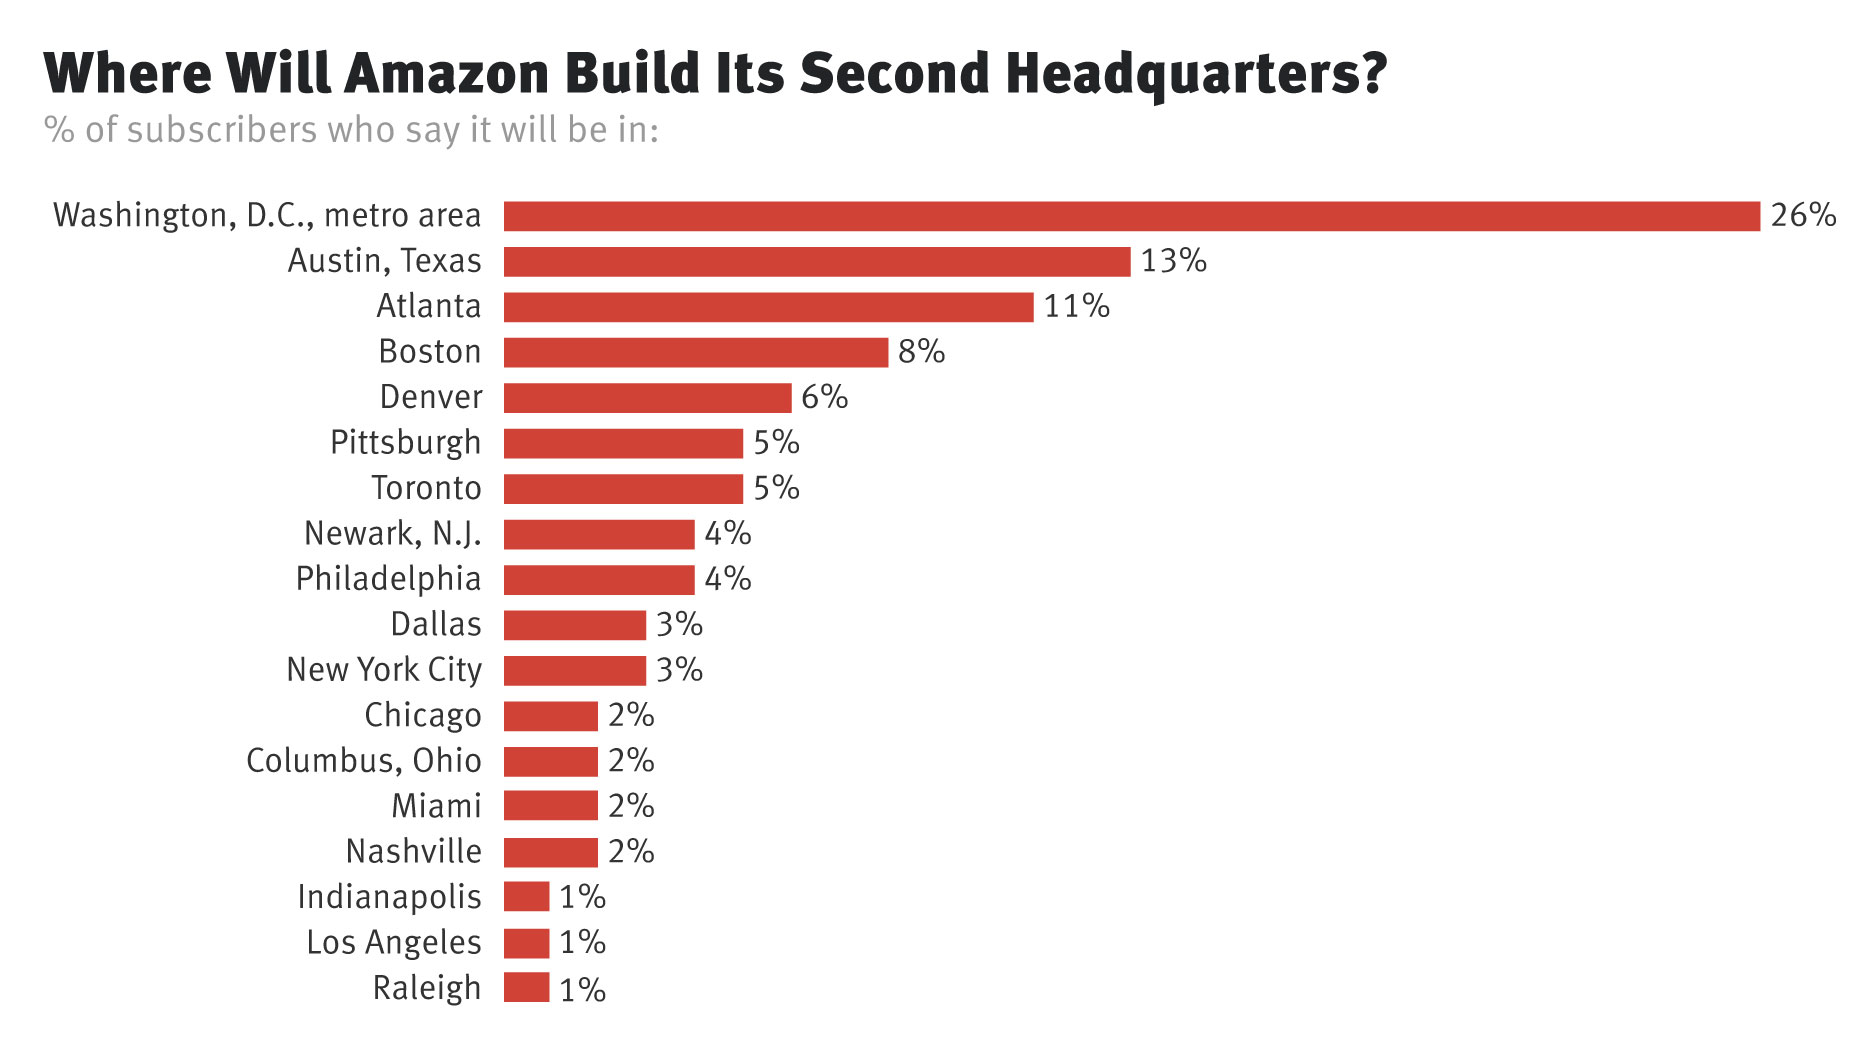 Amazon Likely to Pick Washington, D C , Area for HQ2, Subscribers